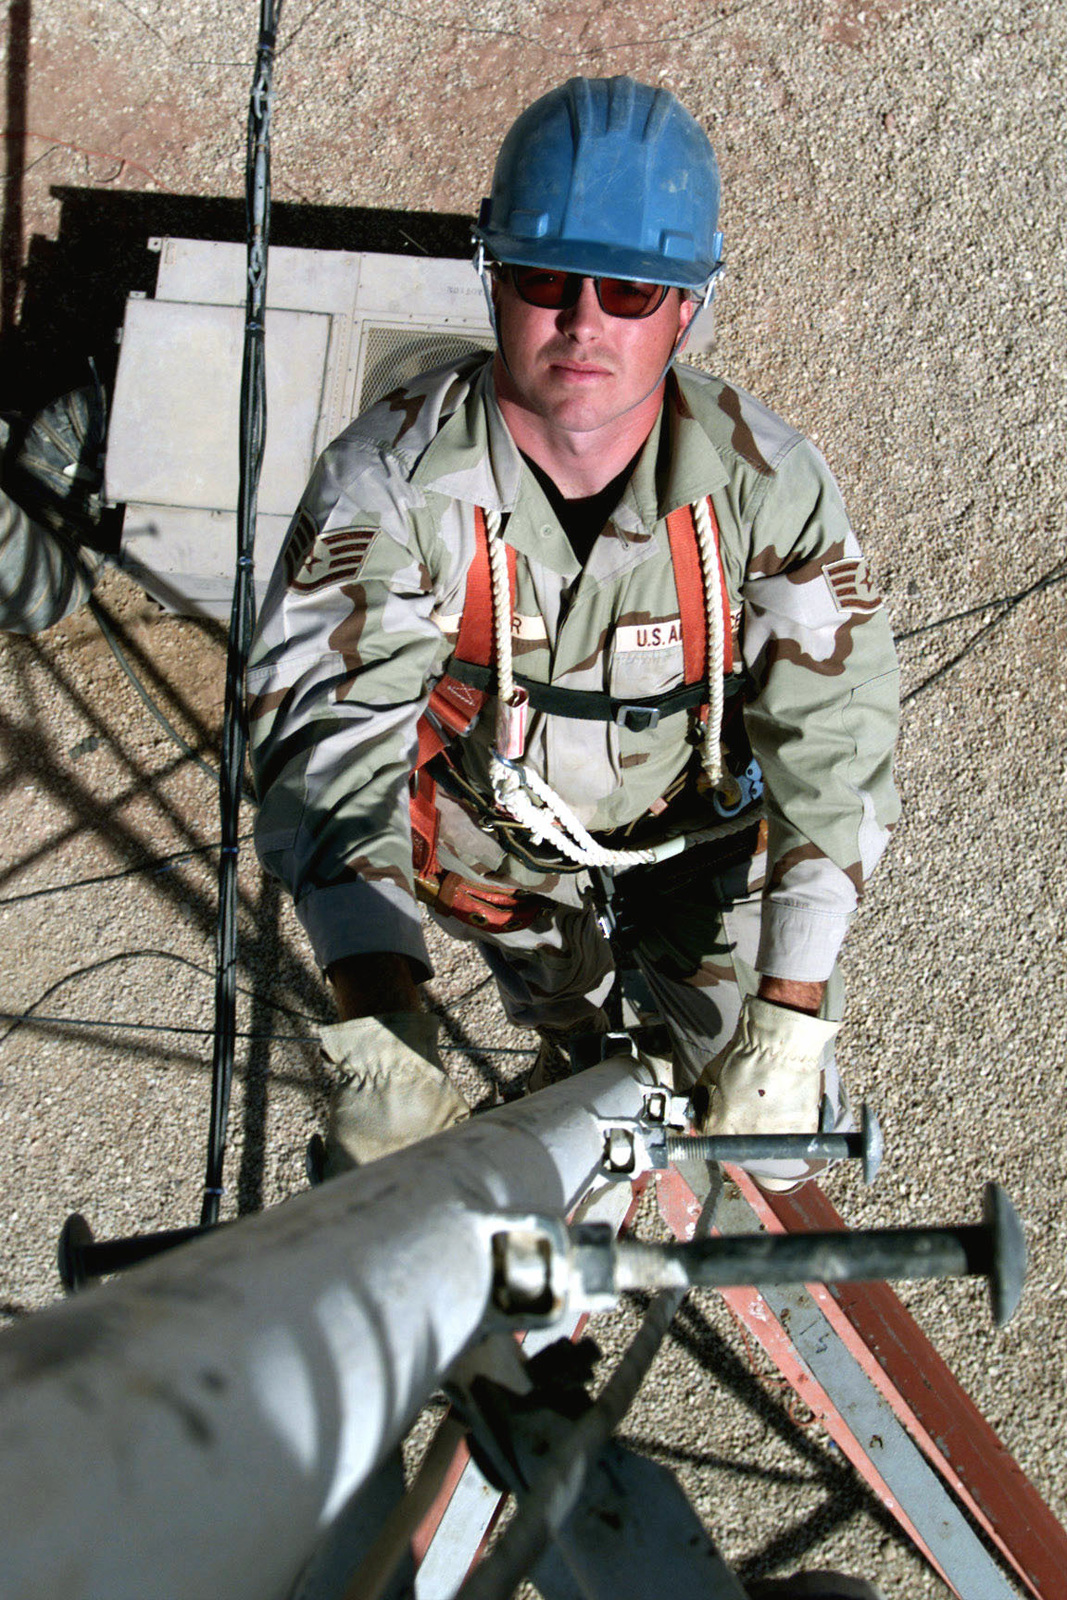 US Air Force STAFF Sergeant David Miller, a Cable/Antenna systems technician from the 341st Communications Squadron, Malmstrom Air Force Base, Montana, climbs up a communications tower to perform maintenance on a cable at Prince Sultan Air Base, Saudi Arabia, during Operation SOUTHERN WATCH. SSGT Miller is part of the coalition forces of the 363rd Air Expeditionary Wing, Prince Sultan Air Base, Saudi Arabia, that enforce the no-fly and no-drive zone in Southern Iraq to protect and defend against Iraqi aggression in support of Operation SOUTHERN WATCH